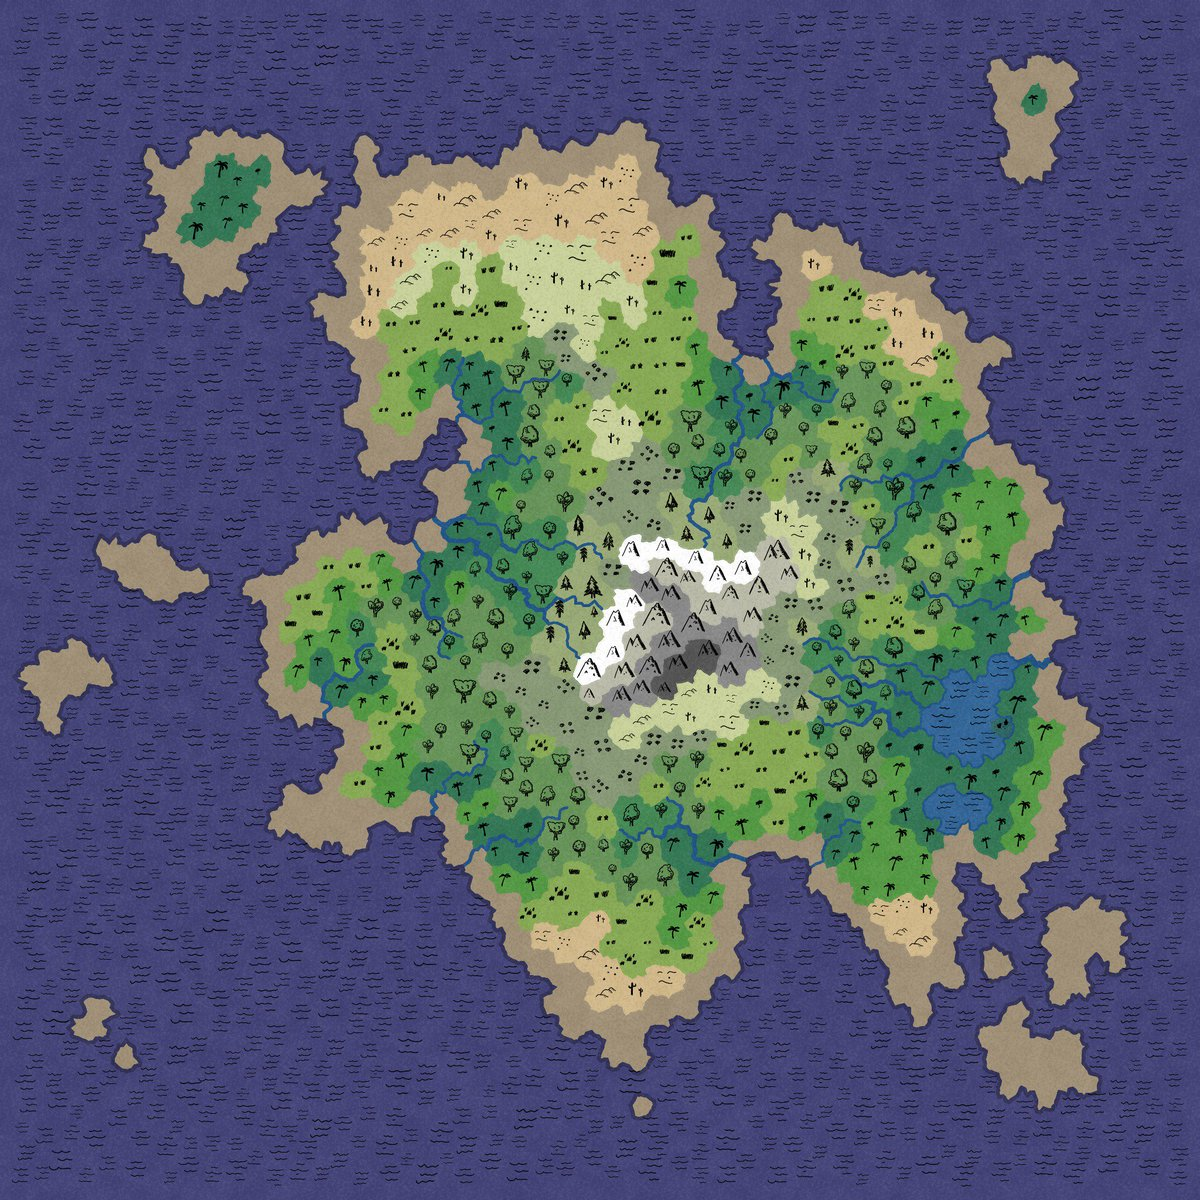 Amit Patel On Twitter This Year Im Trying To Iterate More Heres - Color map generator